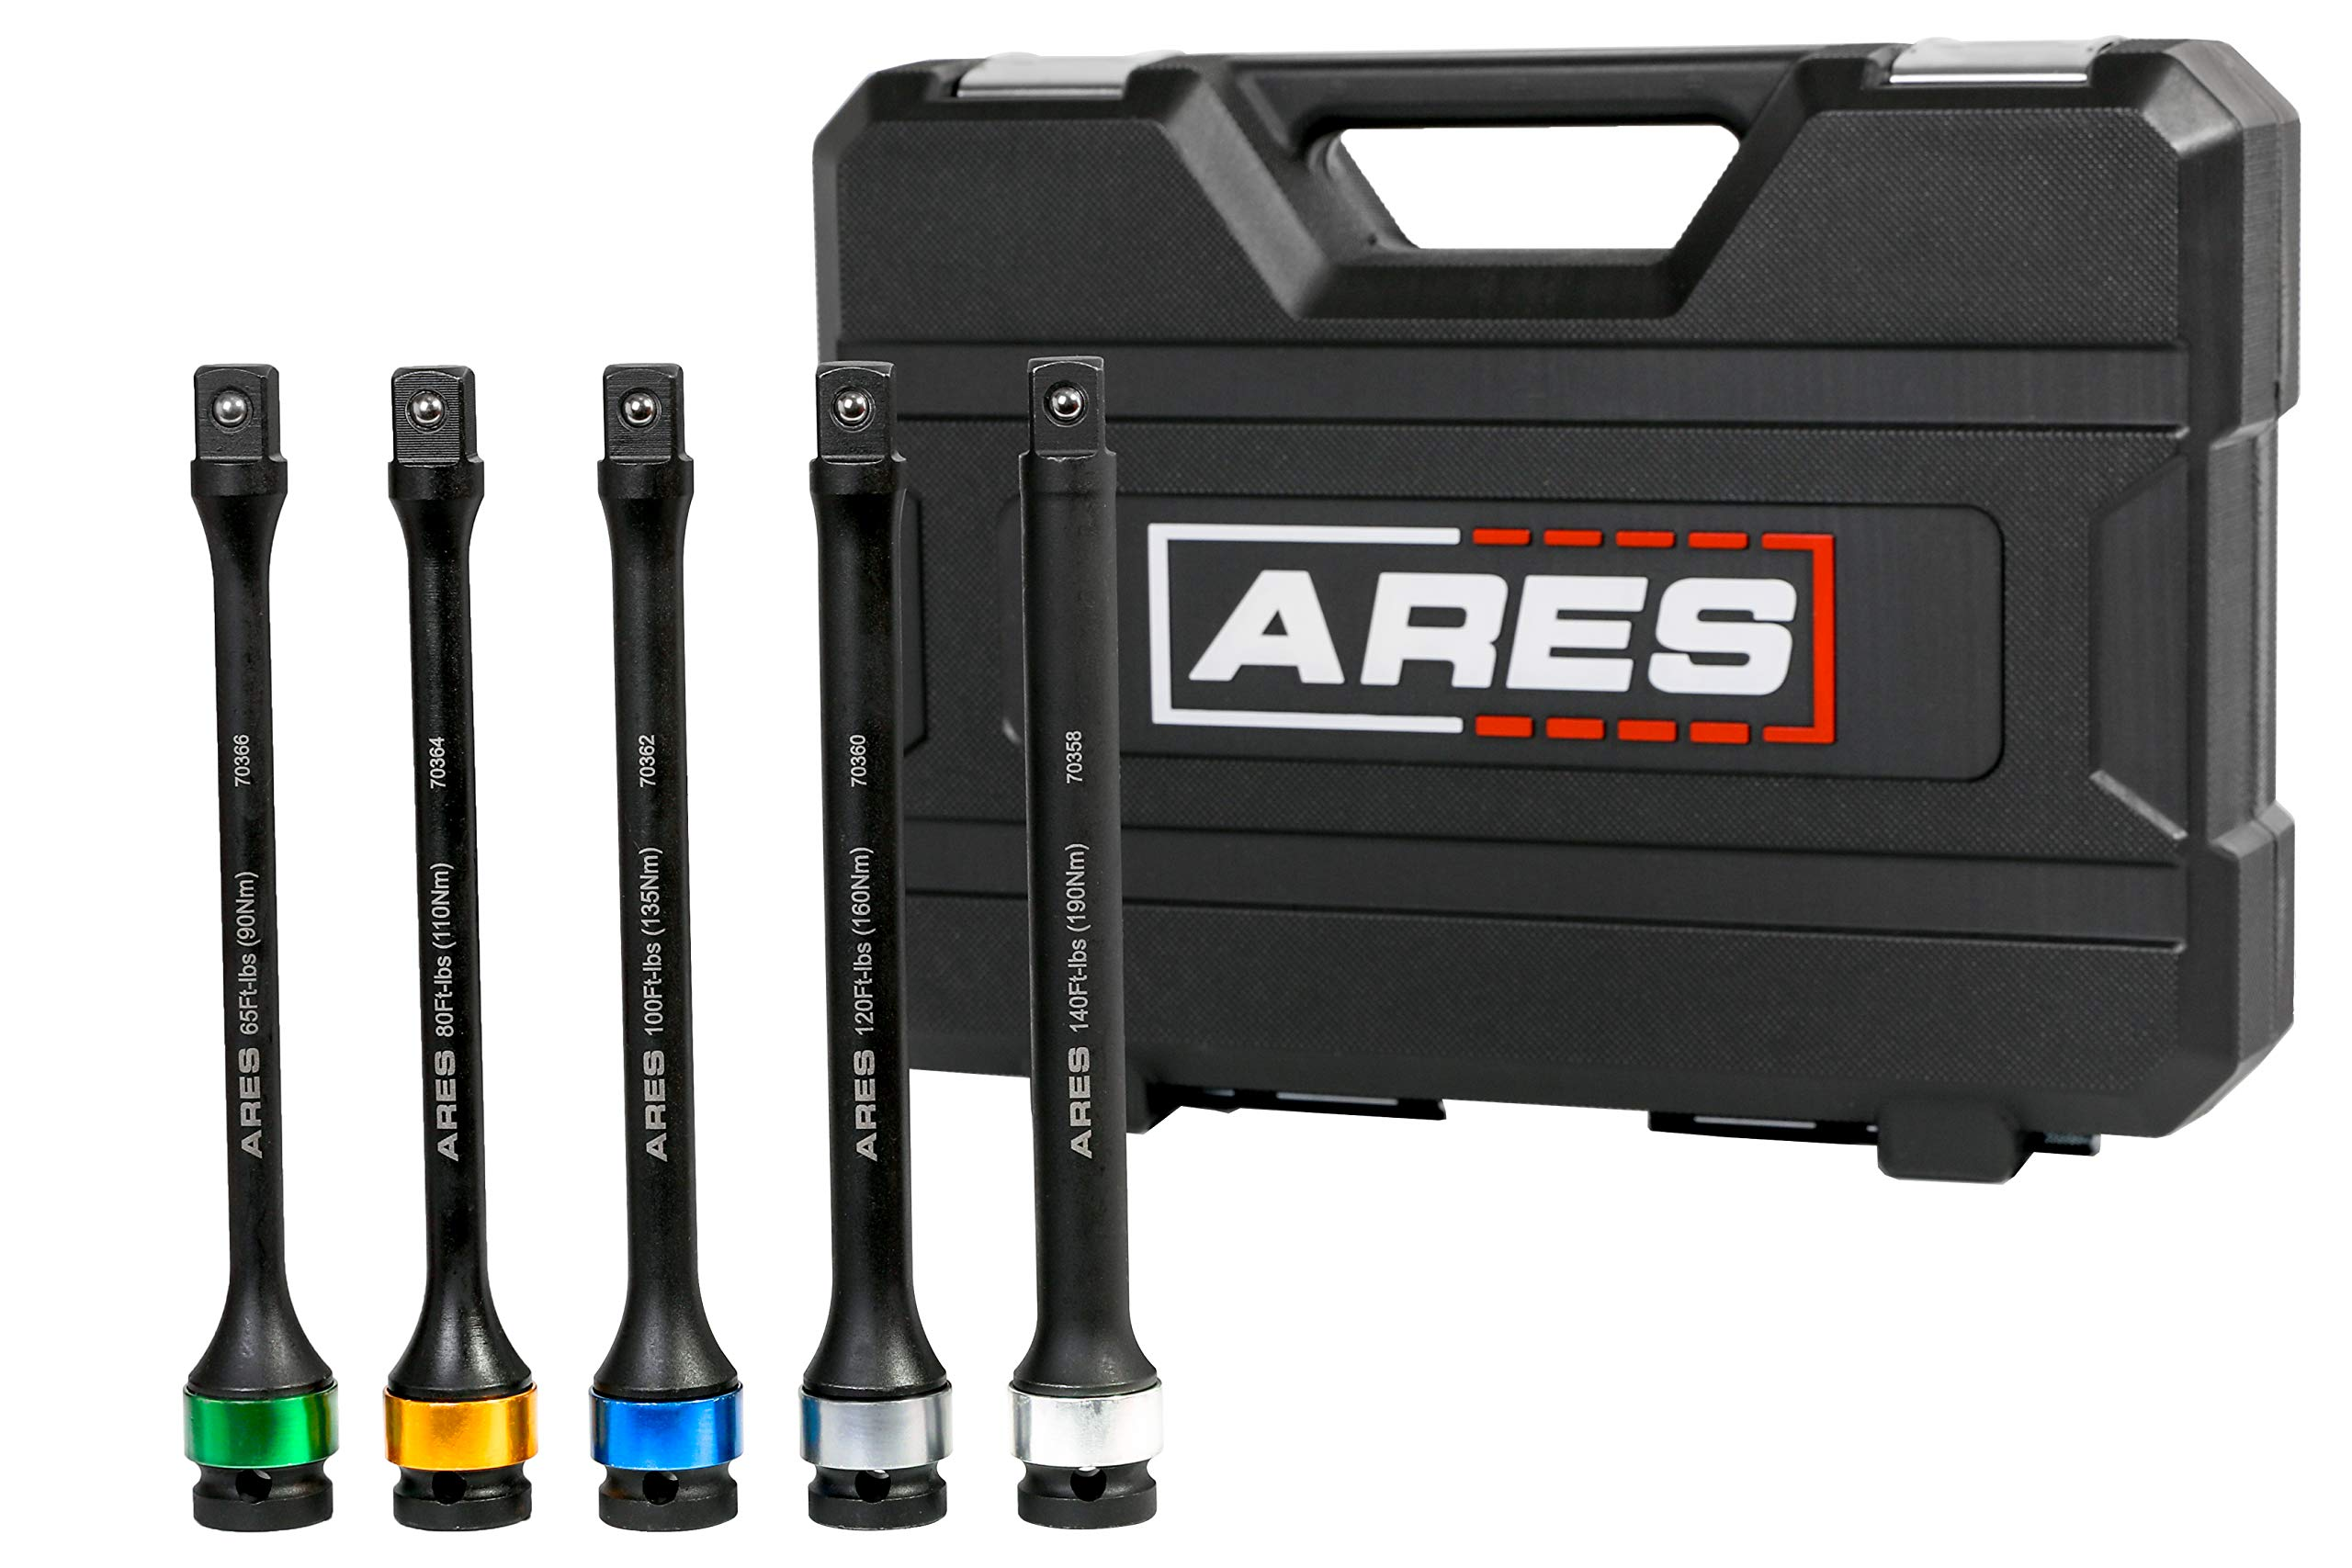 ARES Limiting Extension Over Tightening Identification